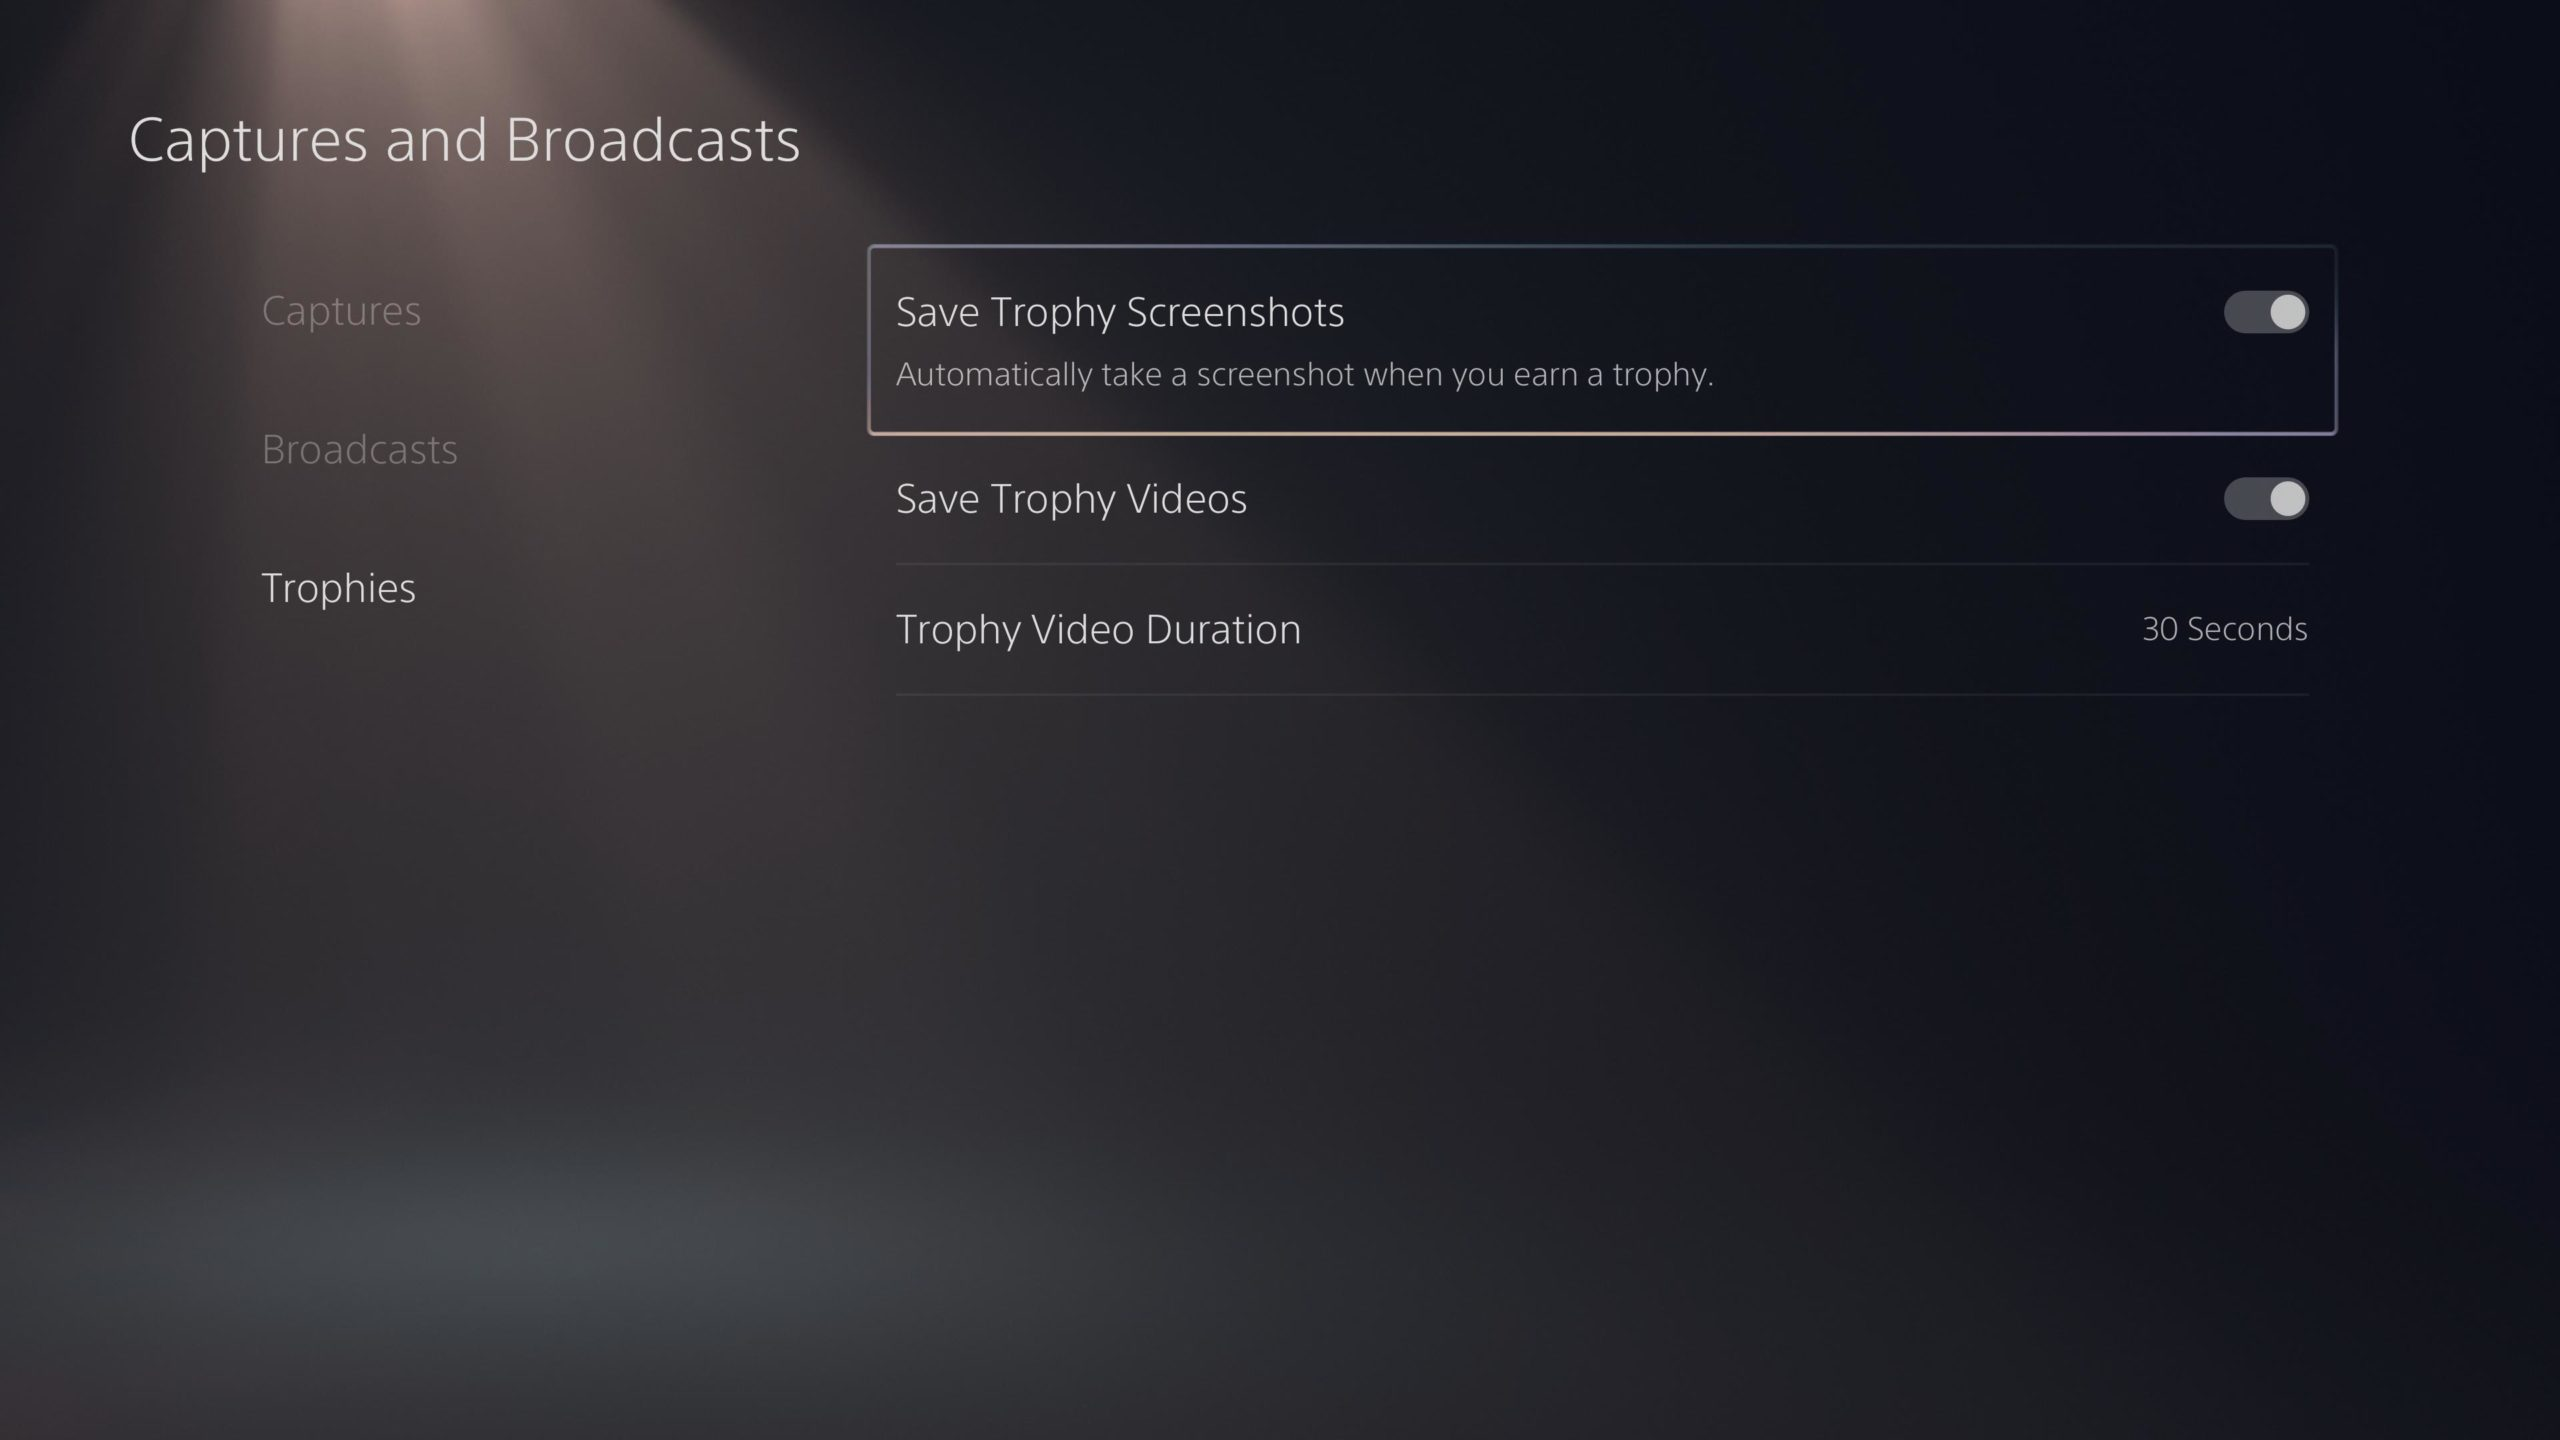 PS5 Trophy Recording